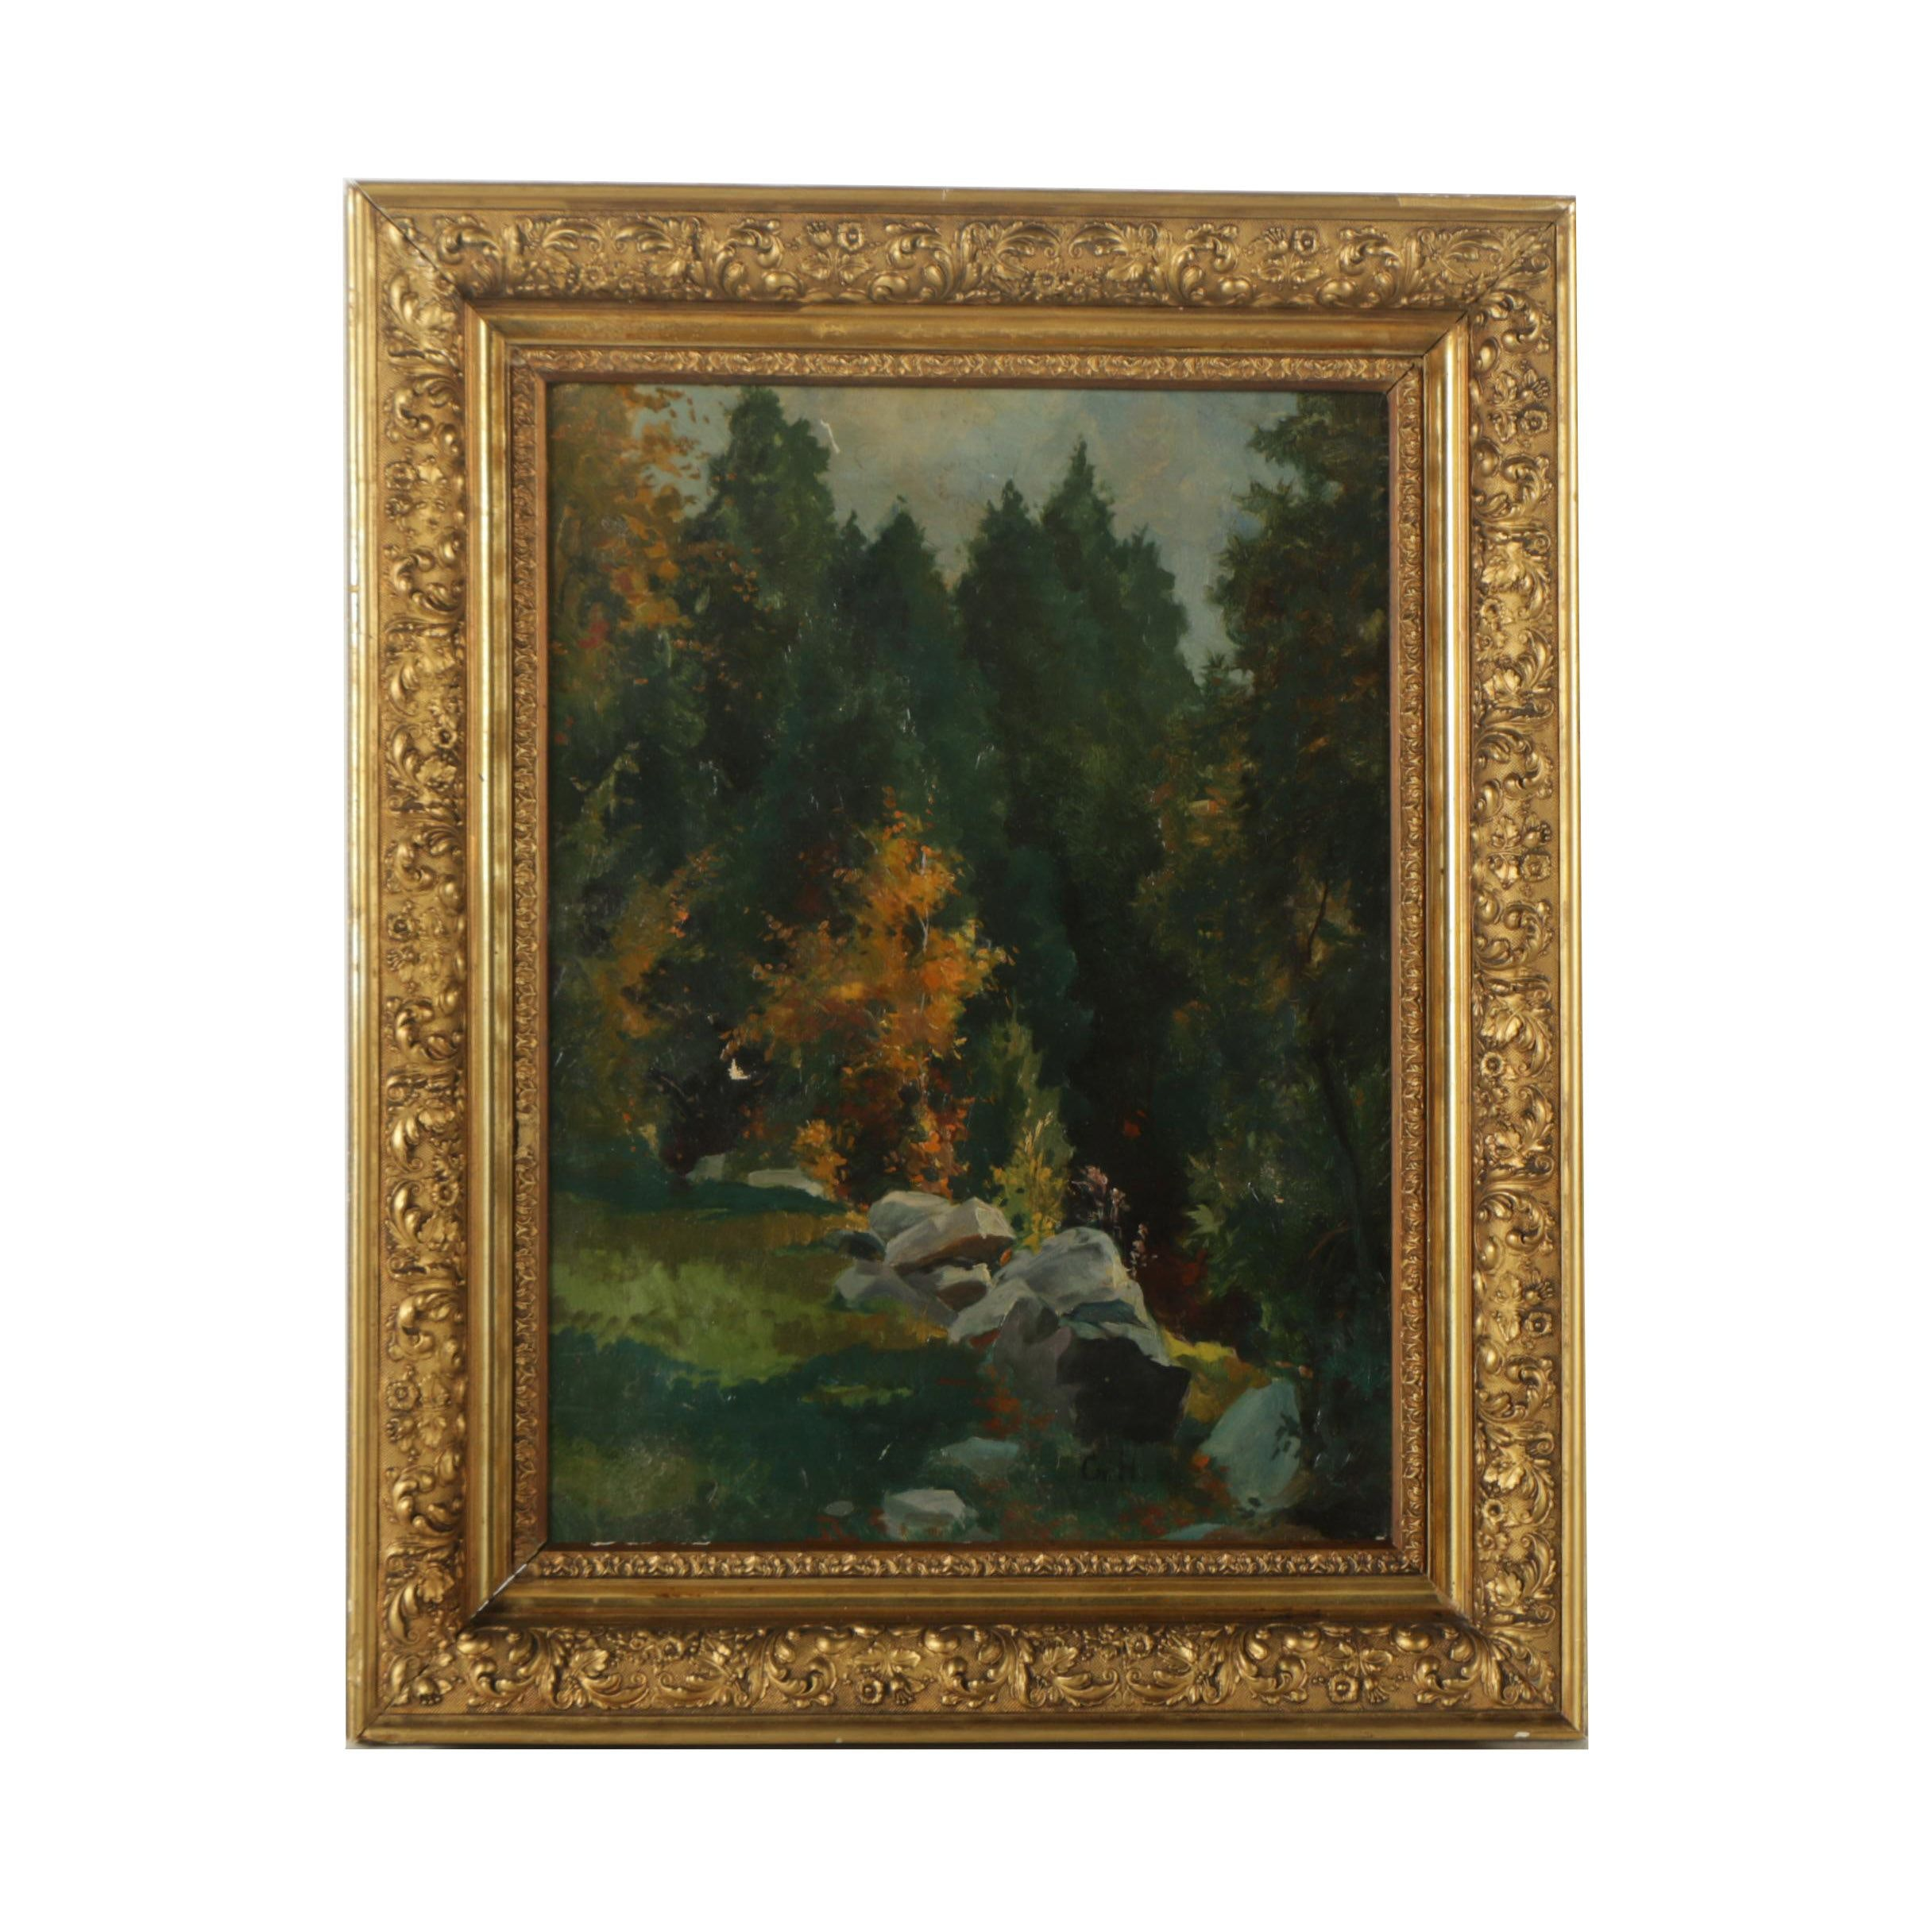 George Howe Oil on Canvas Painting of a Landscape